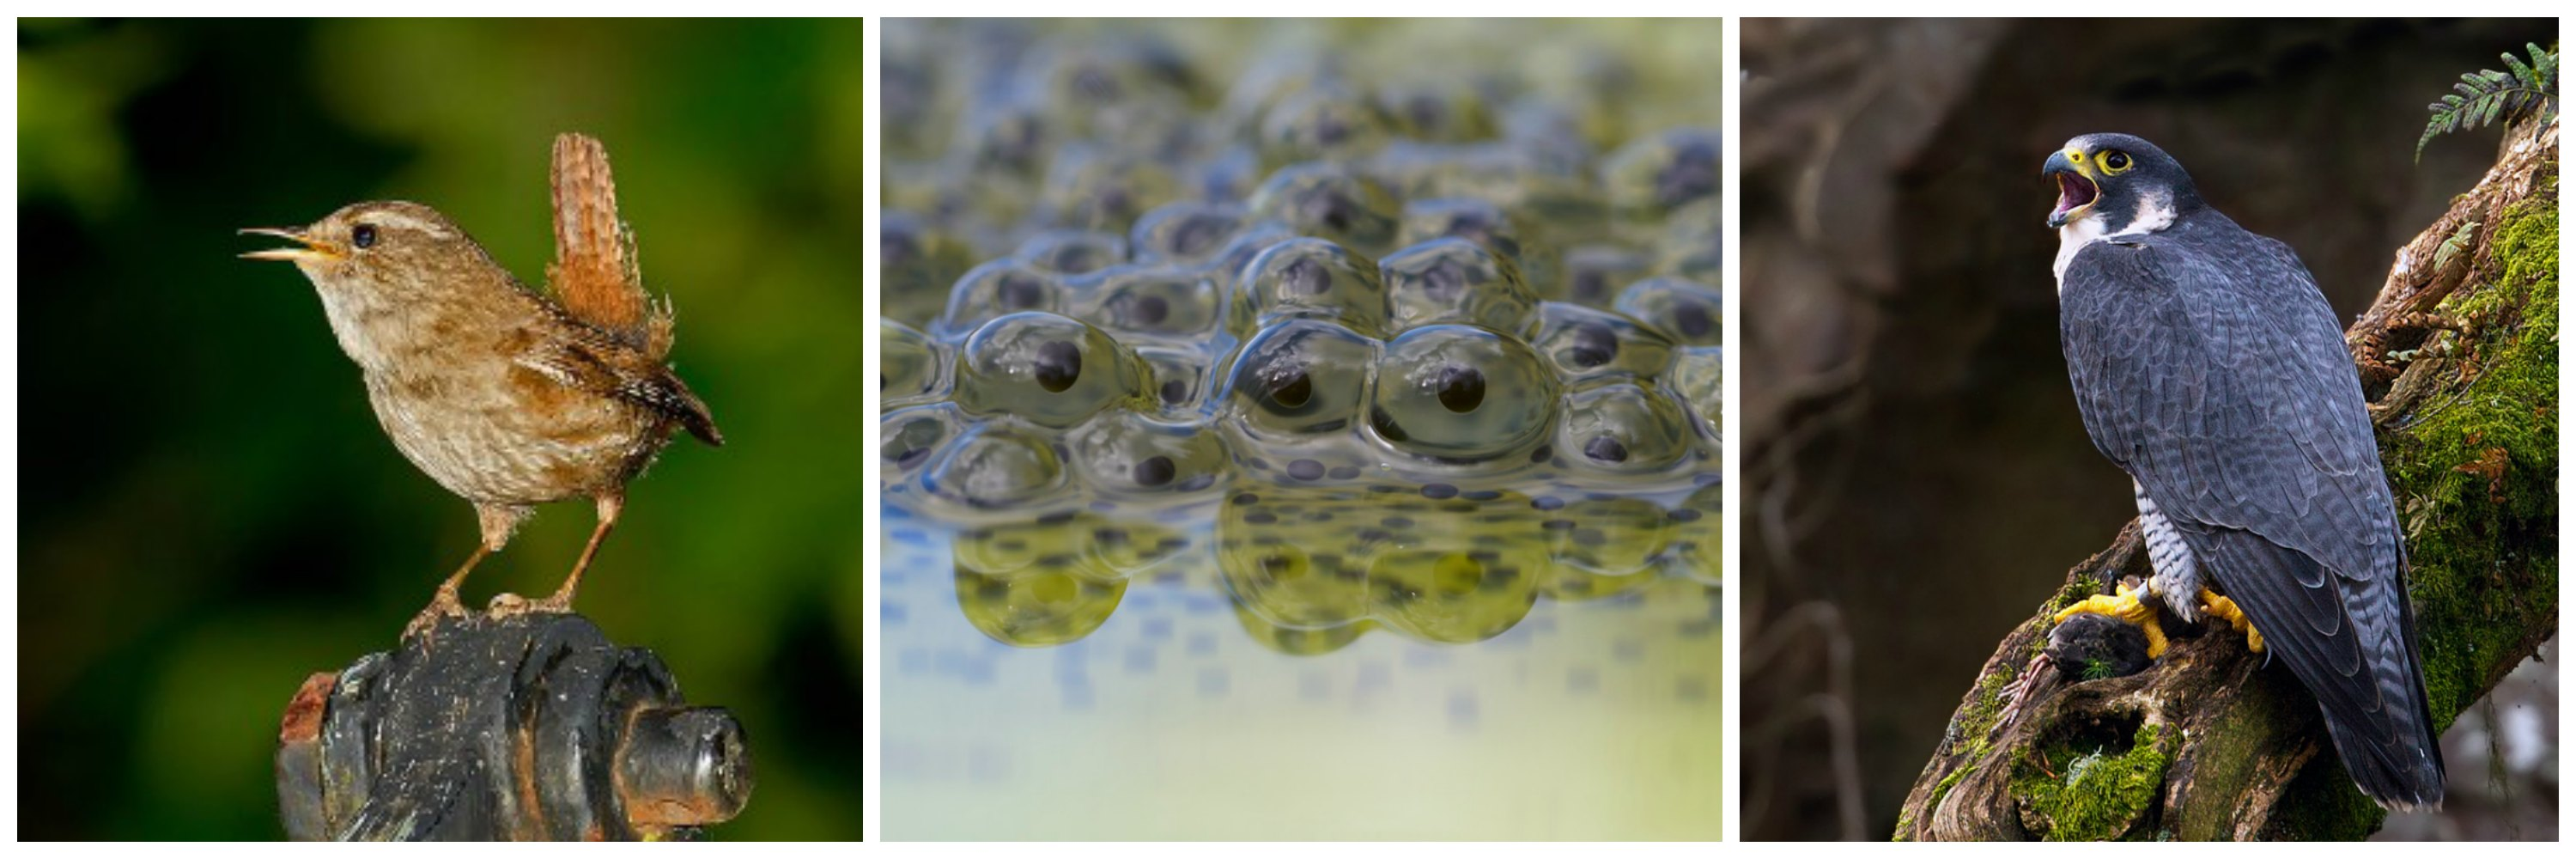 Wren (C Andreas Trepte), frog spawn (C Richard Bowler) and Peregrine Falcon (C Chas Moonie)